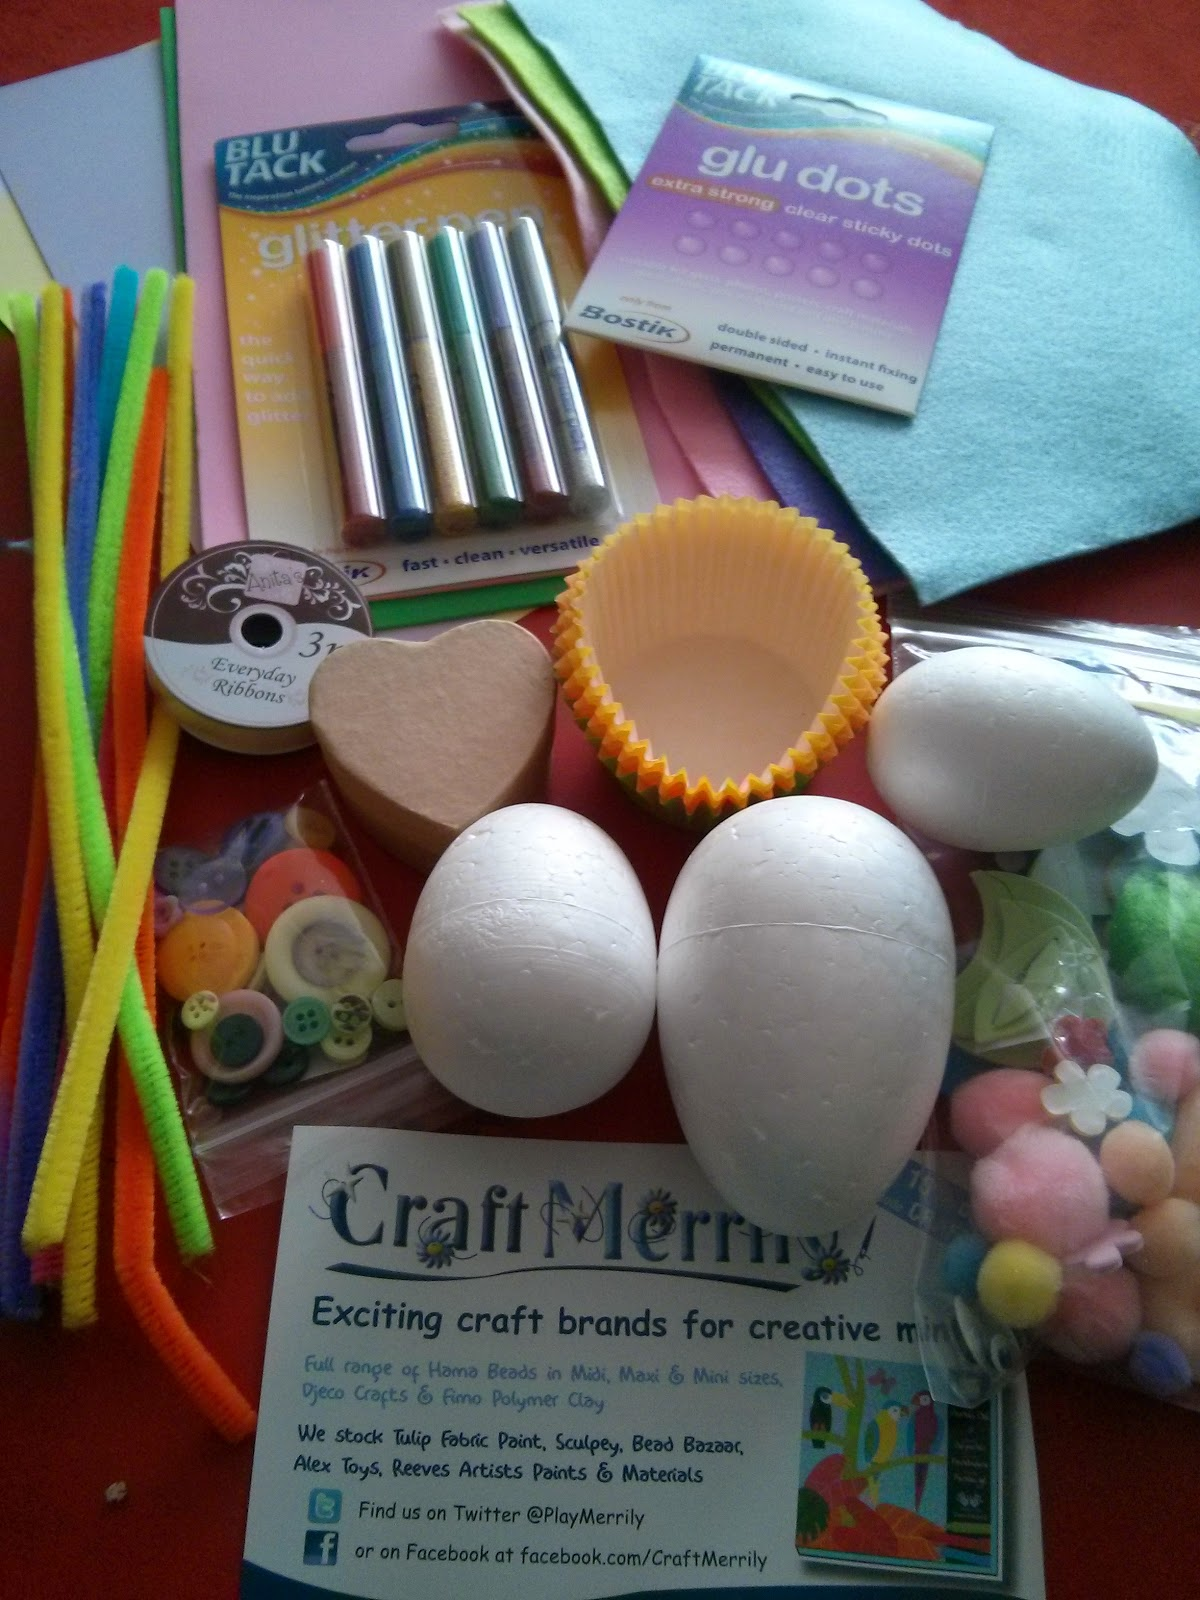 Selection of Craft Materials from Craft Merrily for Bostick Family Craft Network